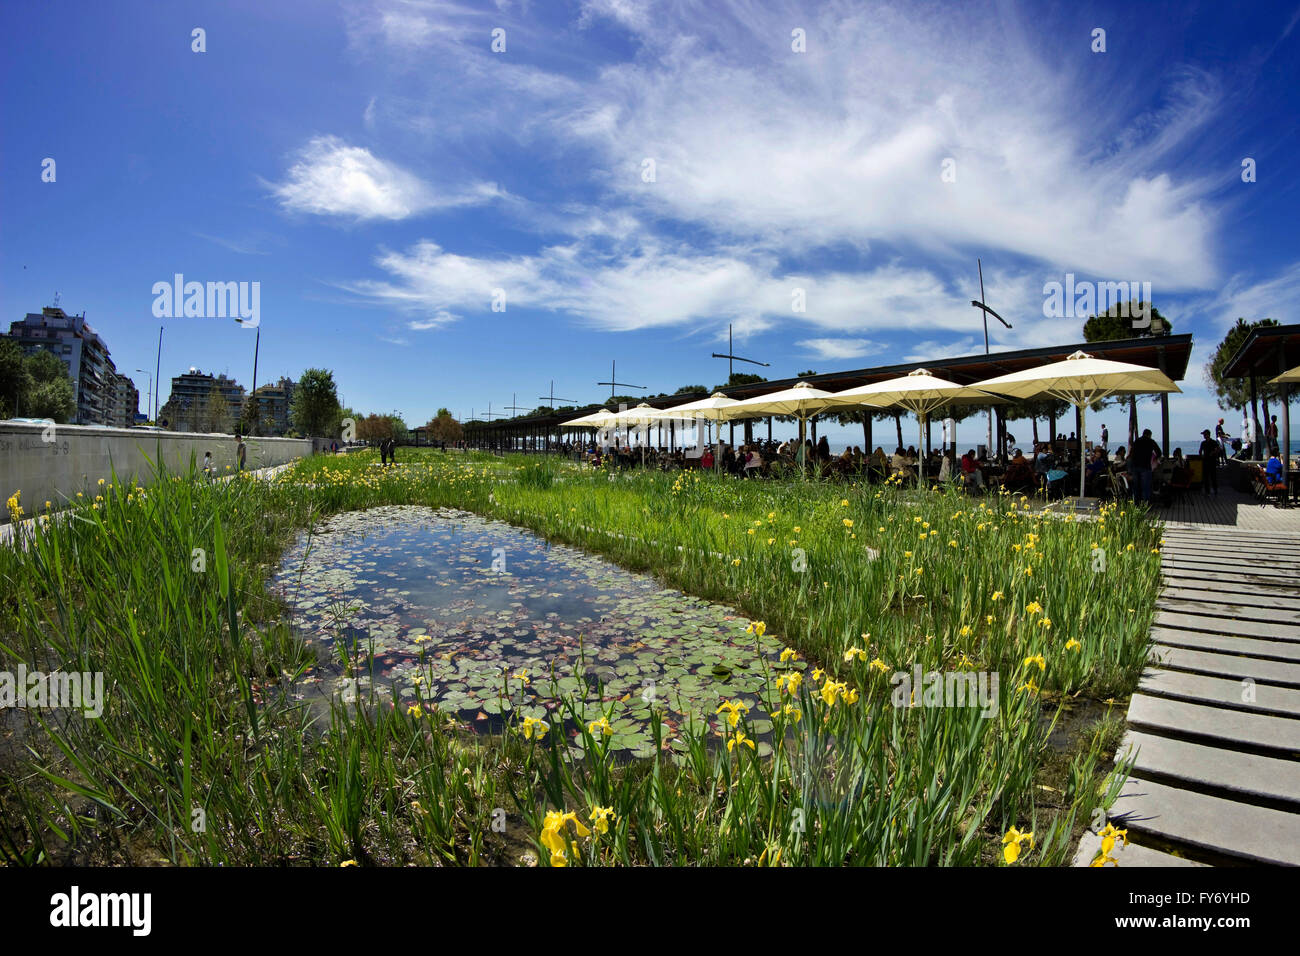 The Garden of water (Kipos nerou in GR) cafee next to the water lily pond surrounded by hydrophilic reeds. Thessaloniki, - Stock Image